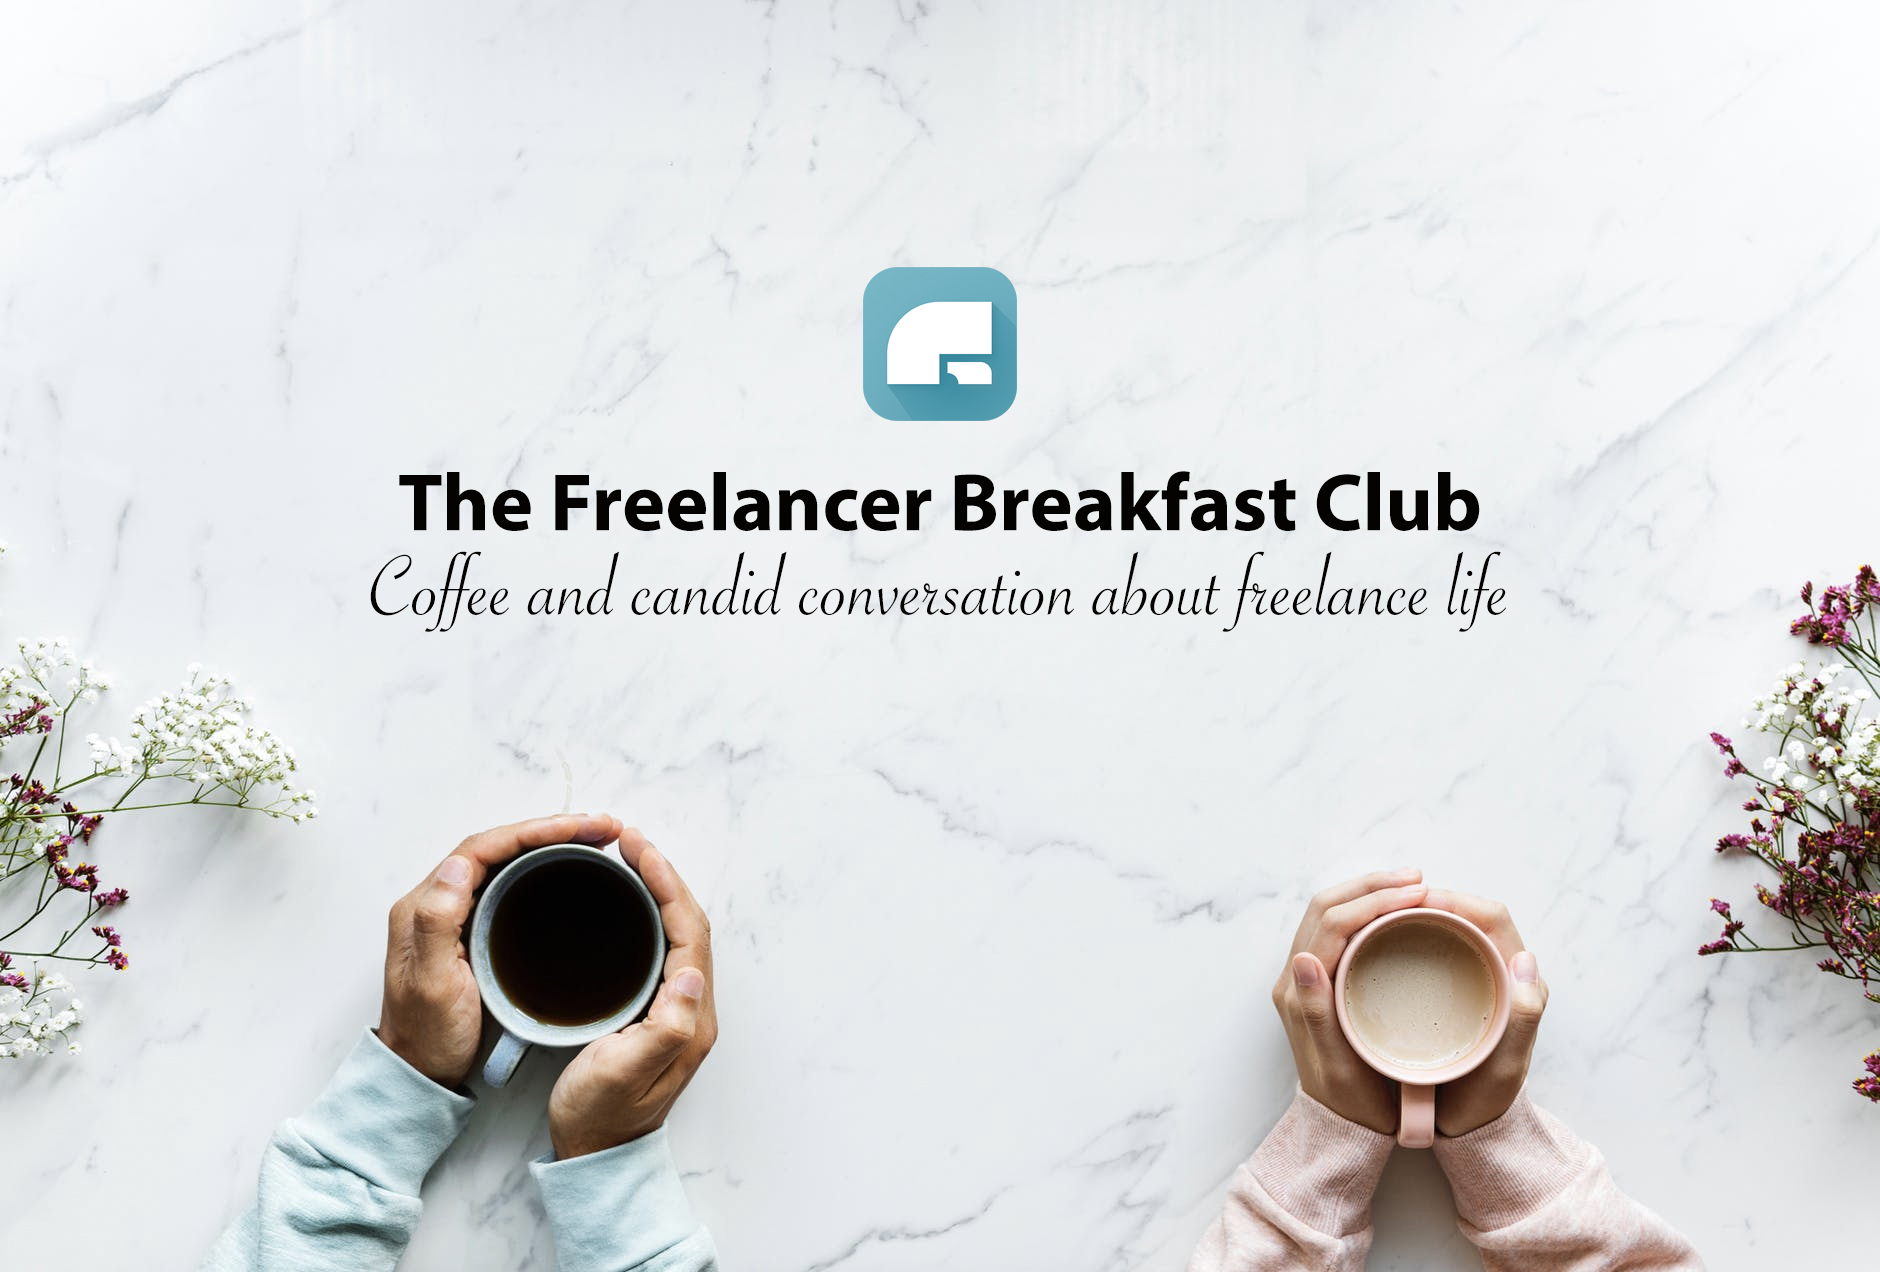 Freelancer Breakfast Club